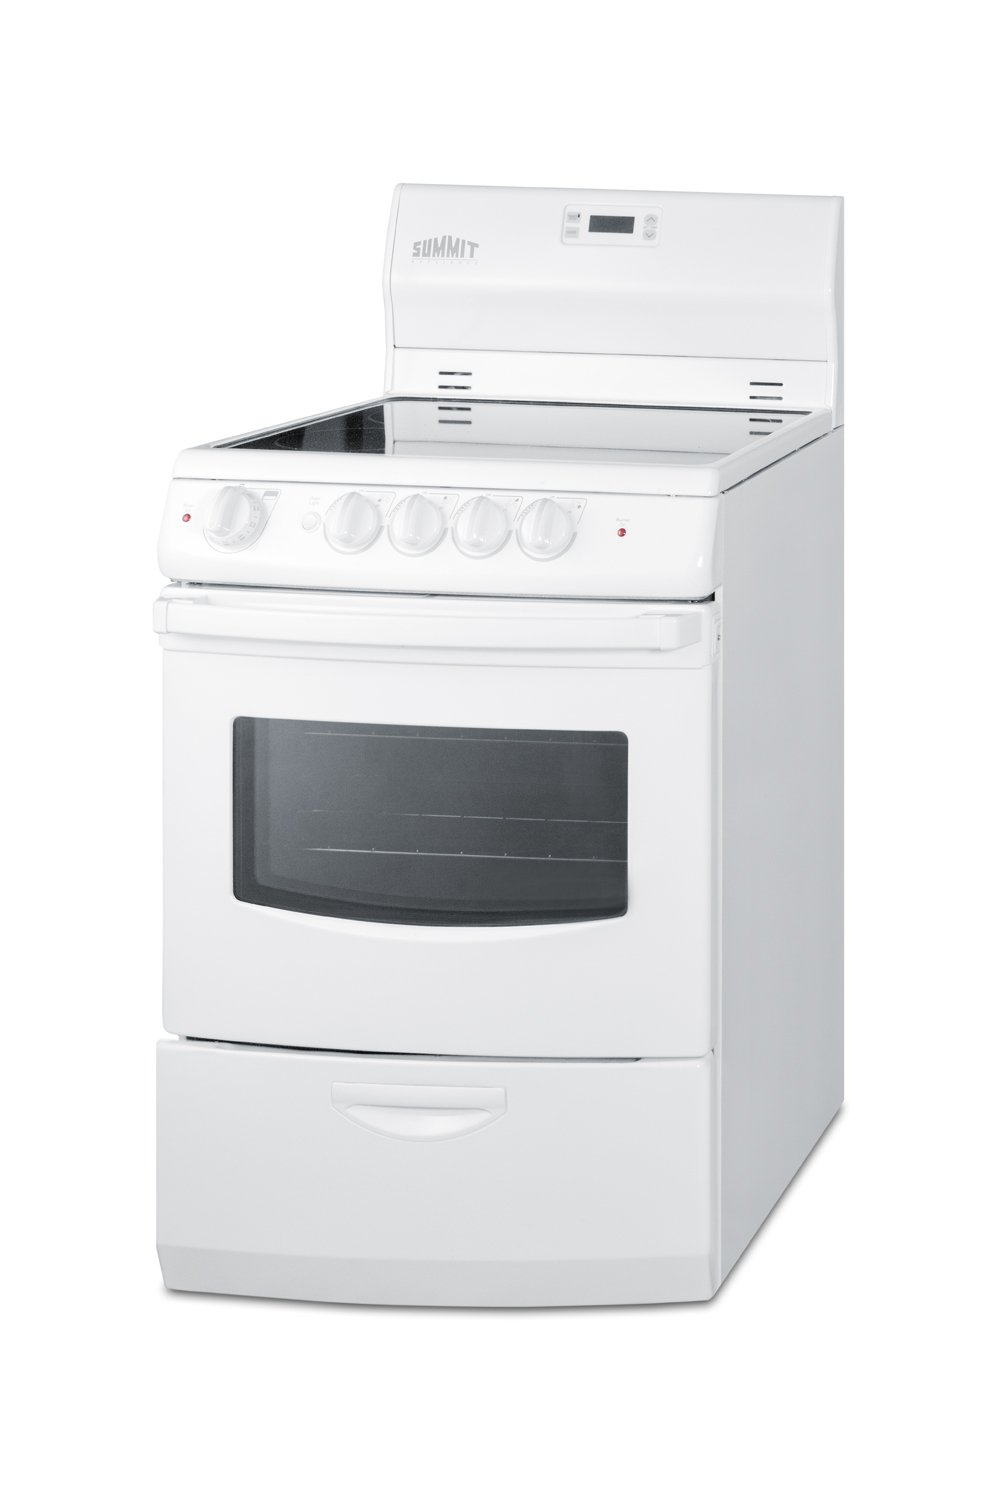 Summit FBA REX242W Pearl 24' 3 cu.ft. Electric Range with Glass Cooktop, Storage Drawer, Exterior, White Summit Appliances